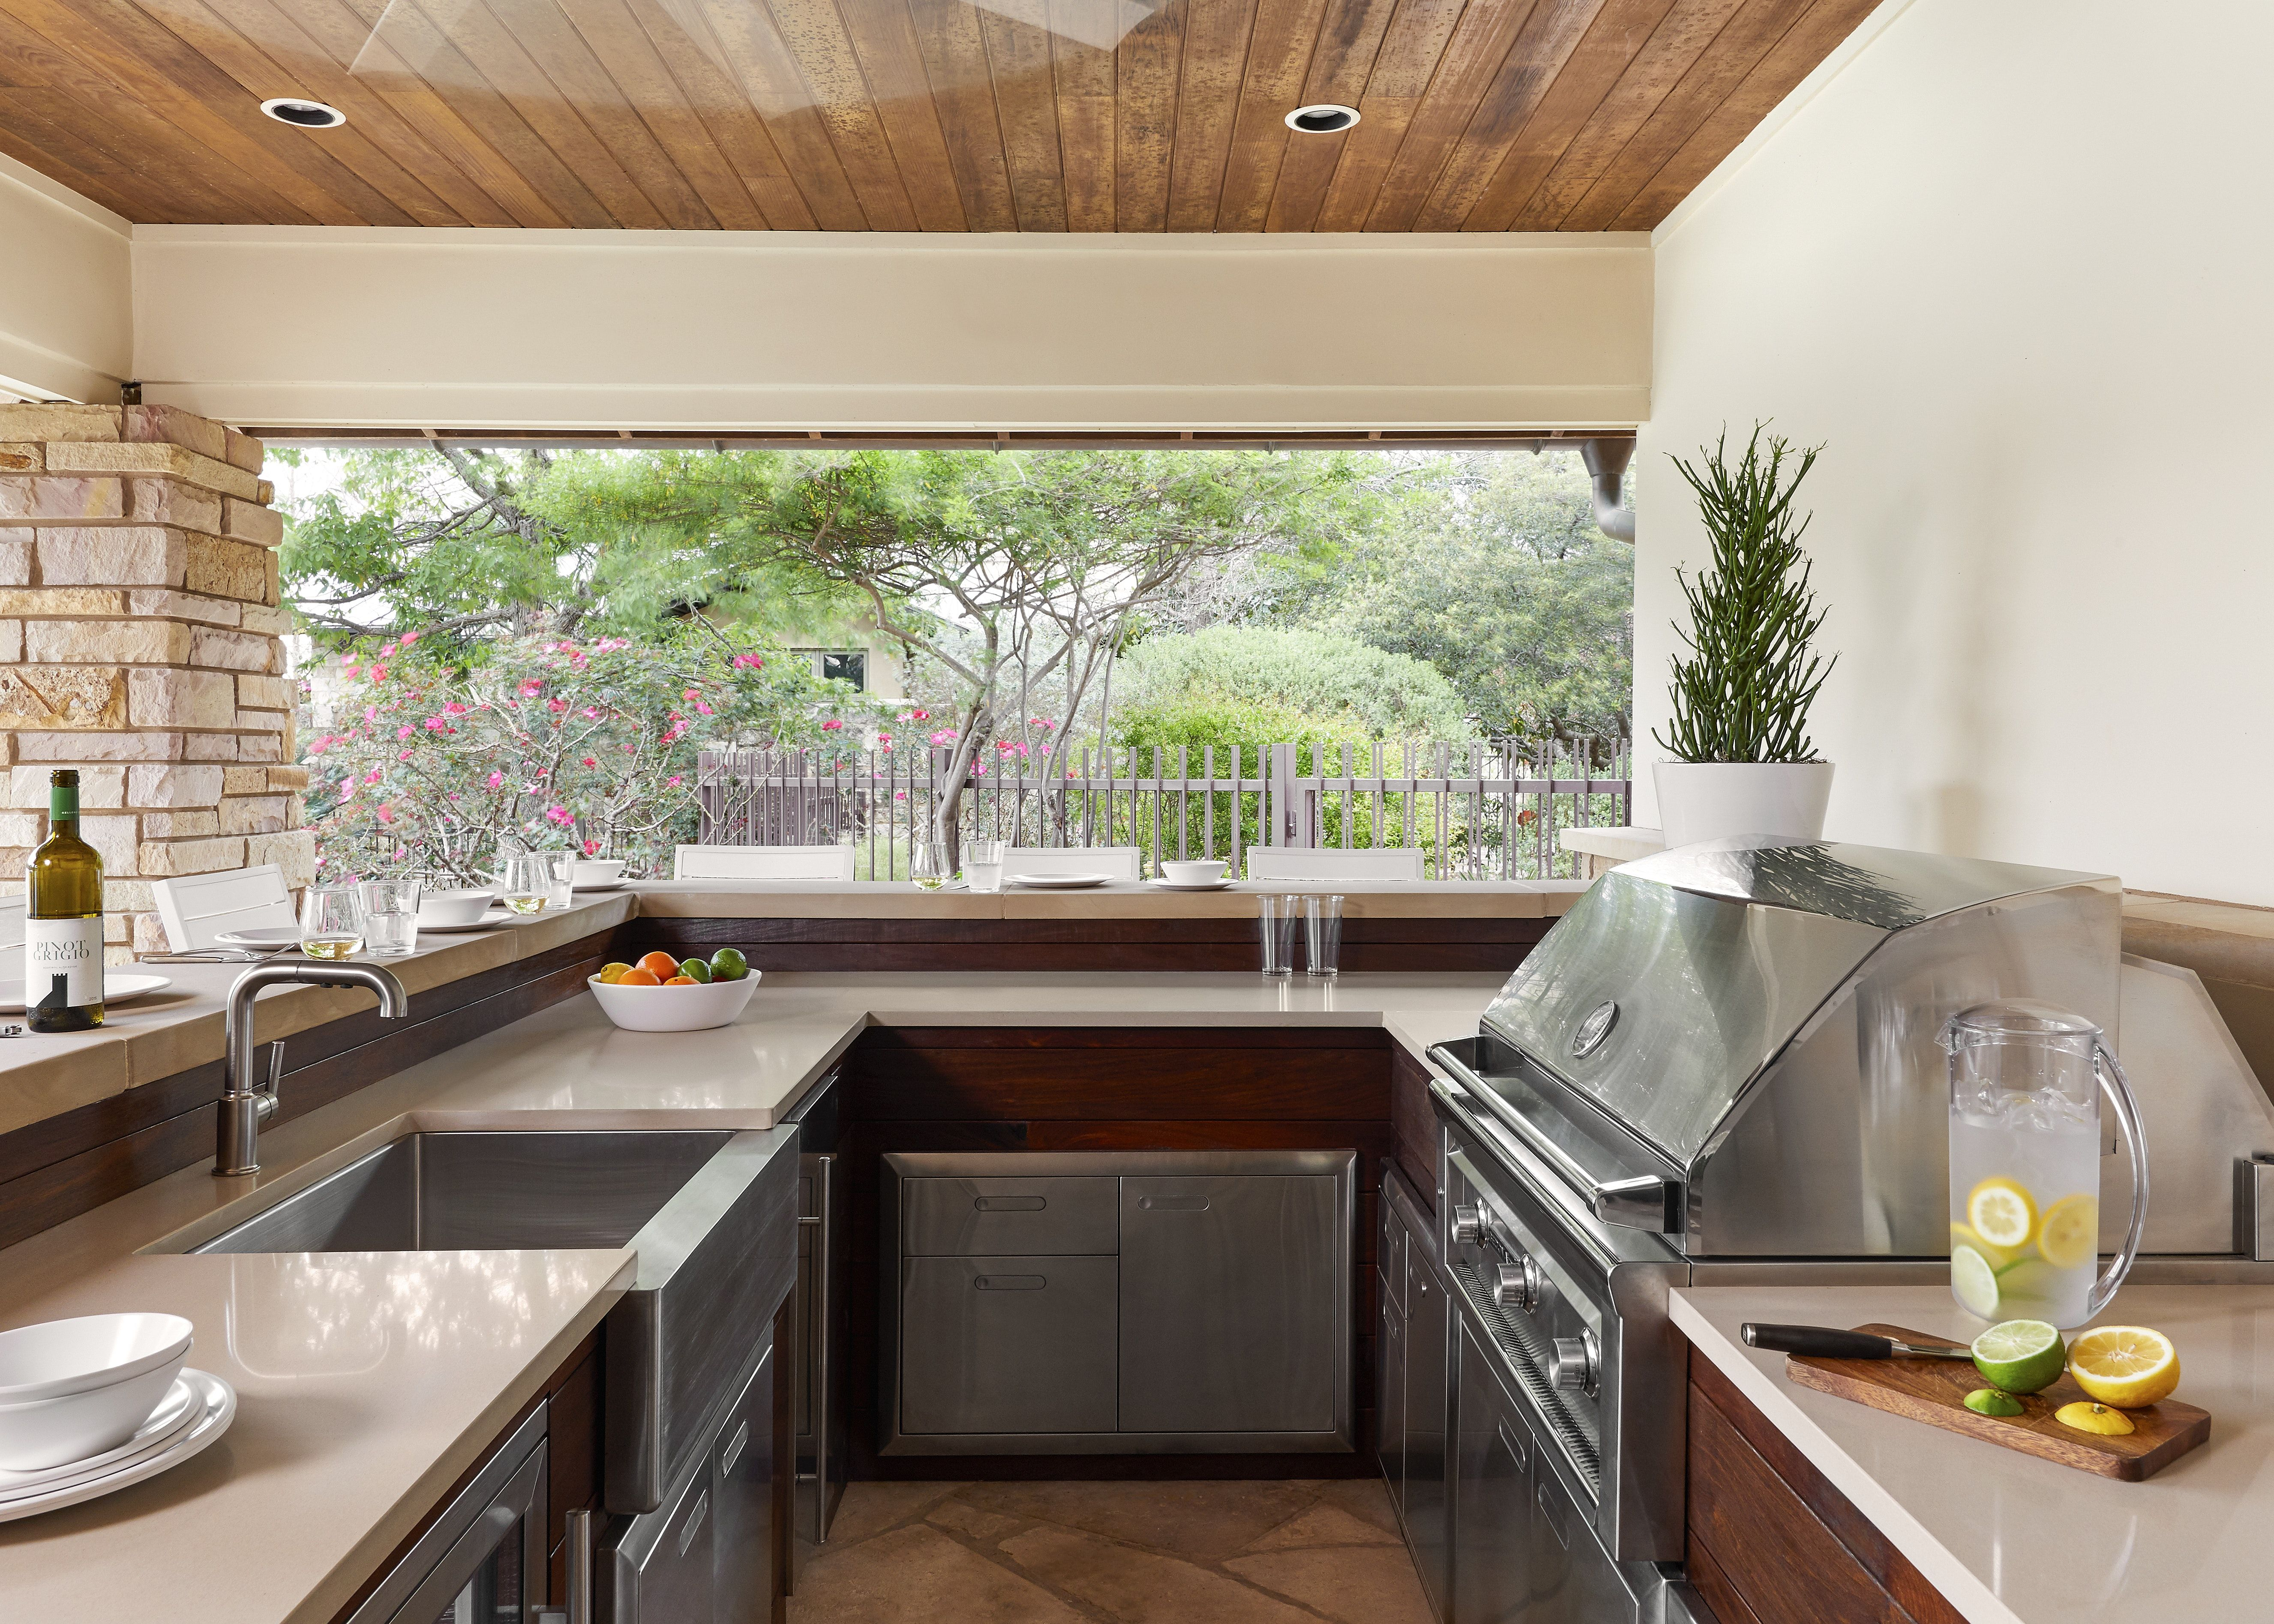 Lake Austin Remodel, Outdoor Kitchen with Ipe cabinetry | :: OUTDOOR ...